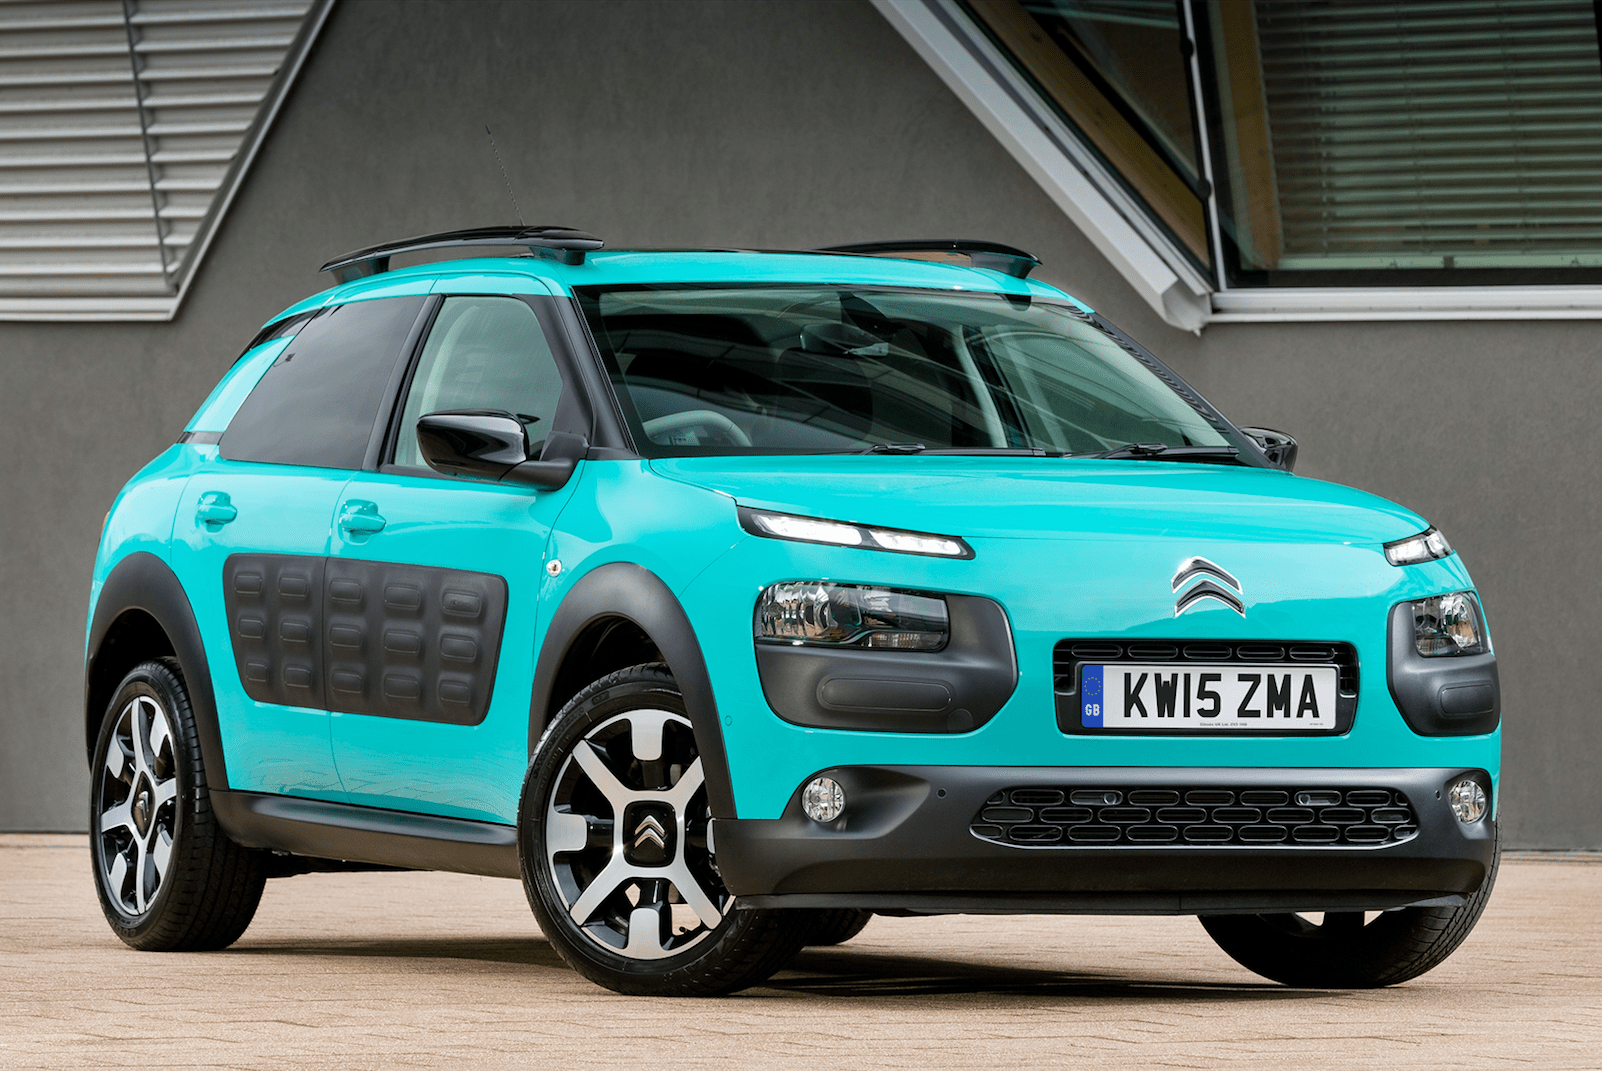 Aquamarine Citroen C4 Cactus with back trim